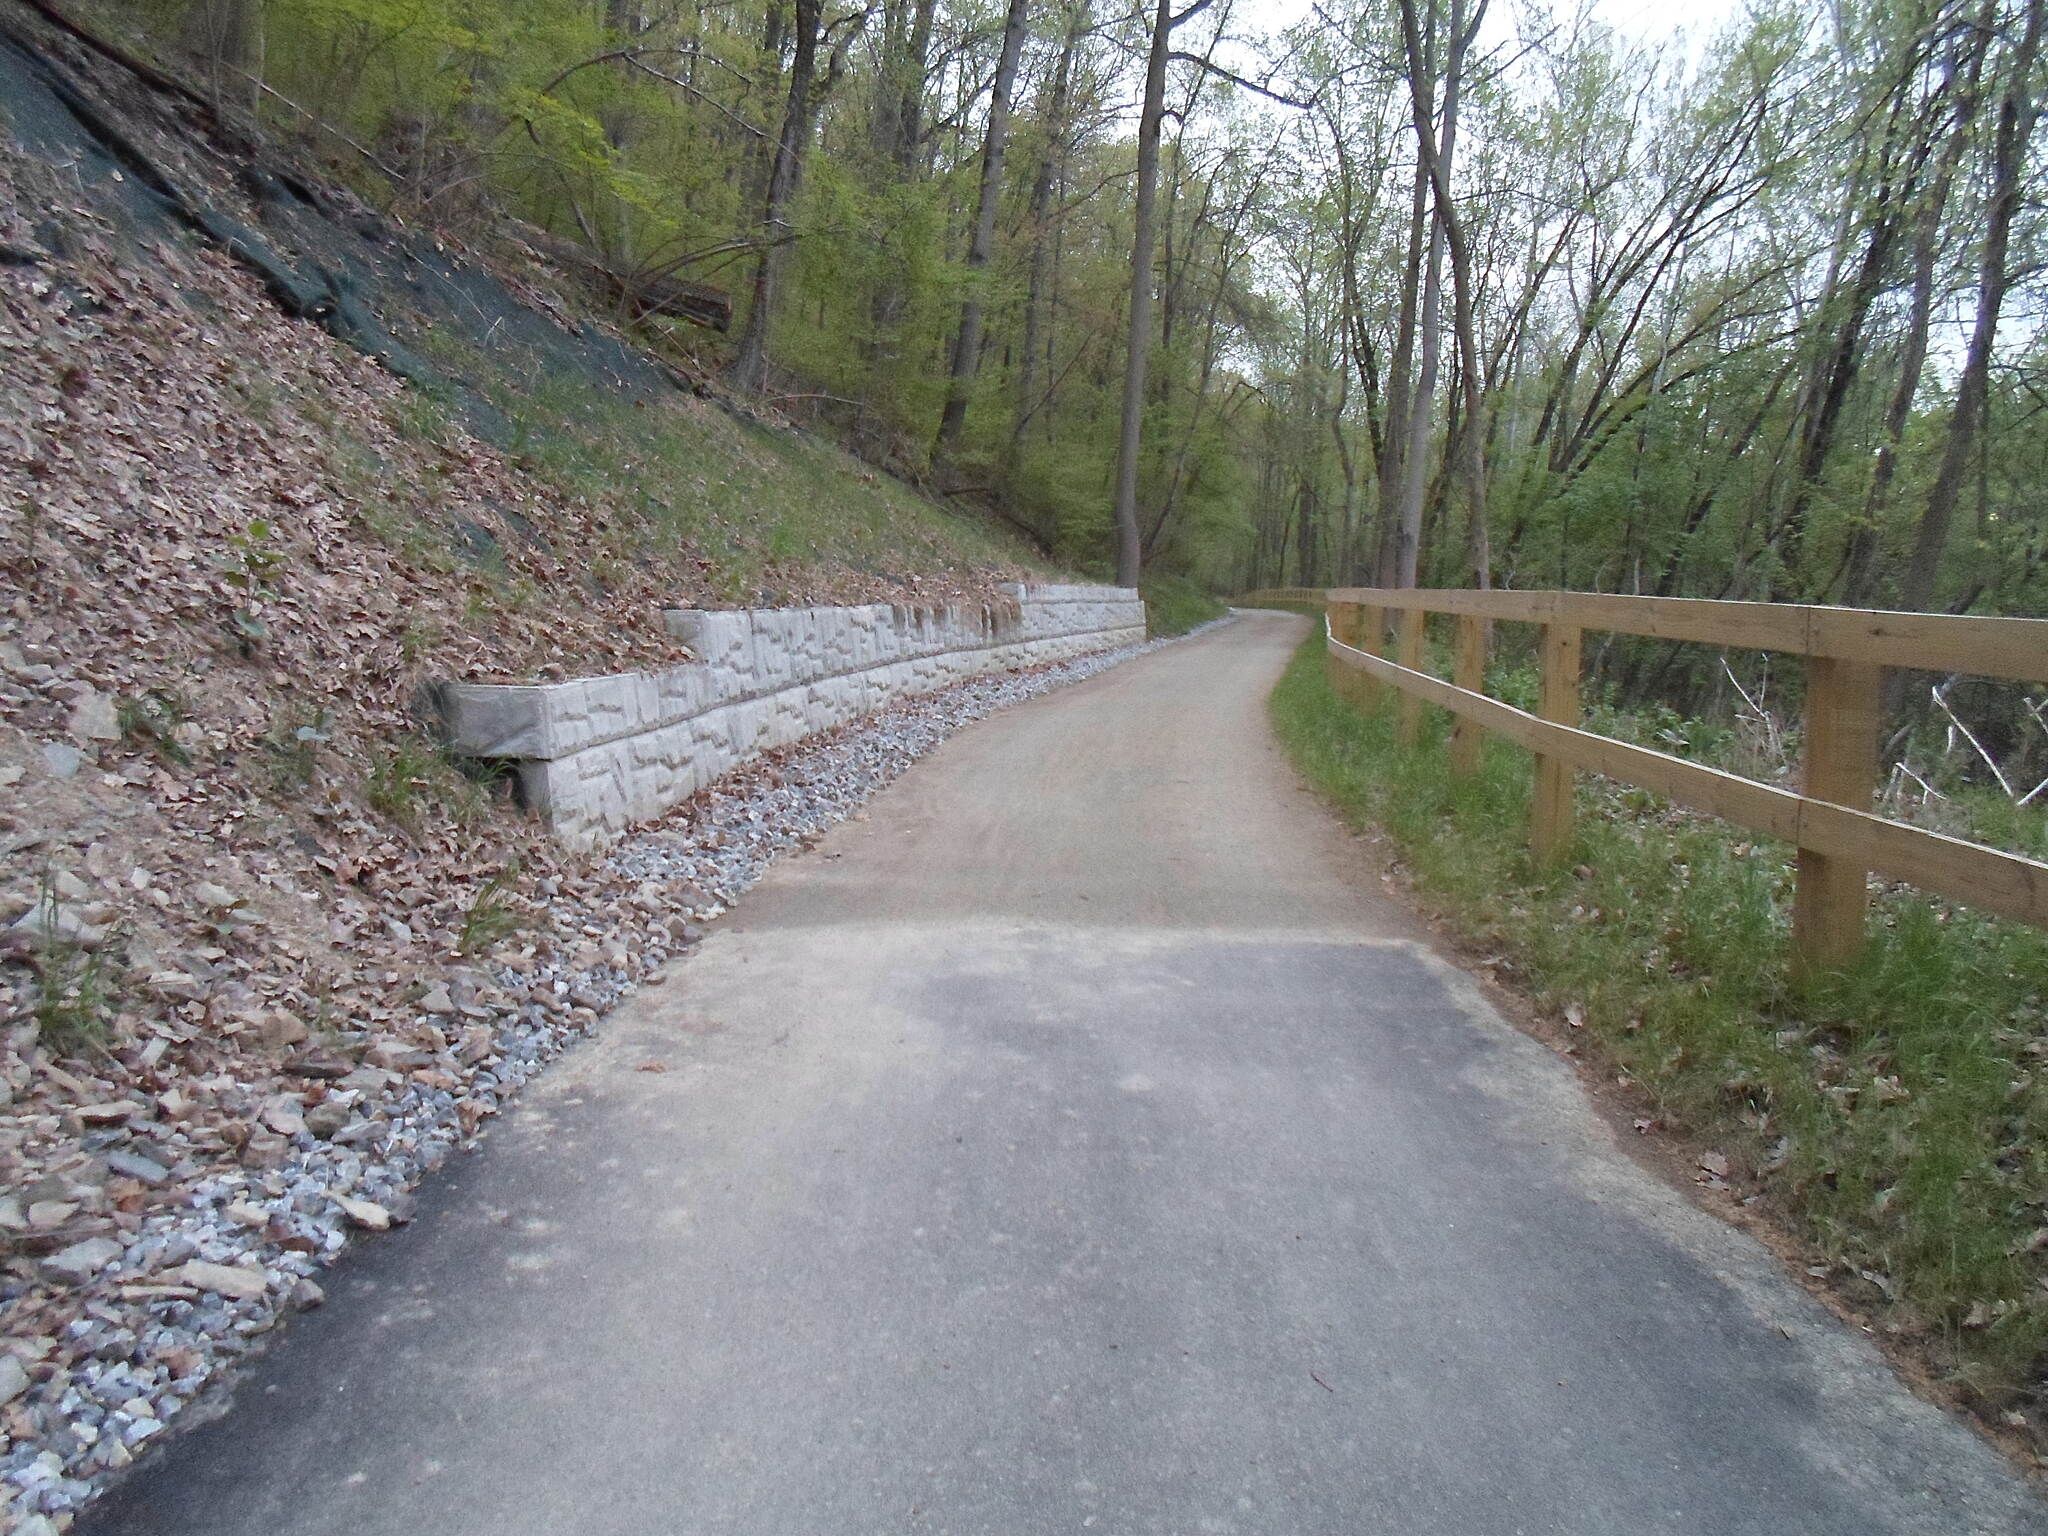 Heritage Rail Trail County Park Heritage Rail Trail Park The surface of the Northern Extension changes from asphalt to crushed stone about halfway between Mundis Mill Road and Route 30. Taken April 2015.